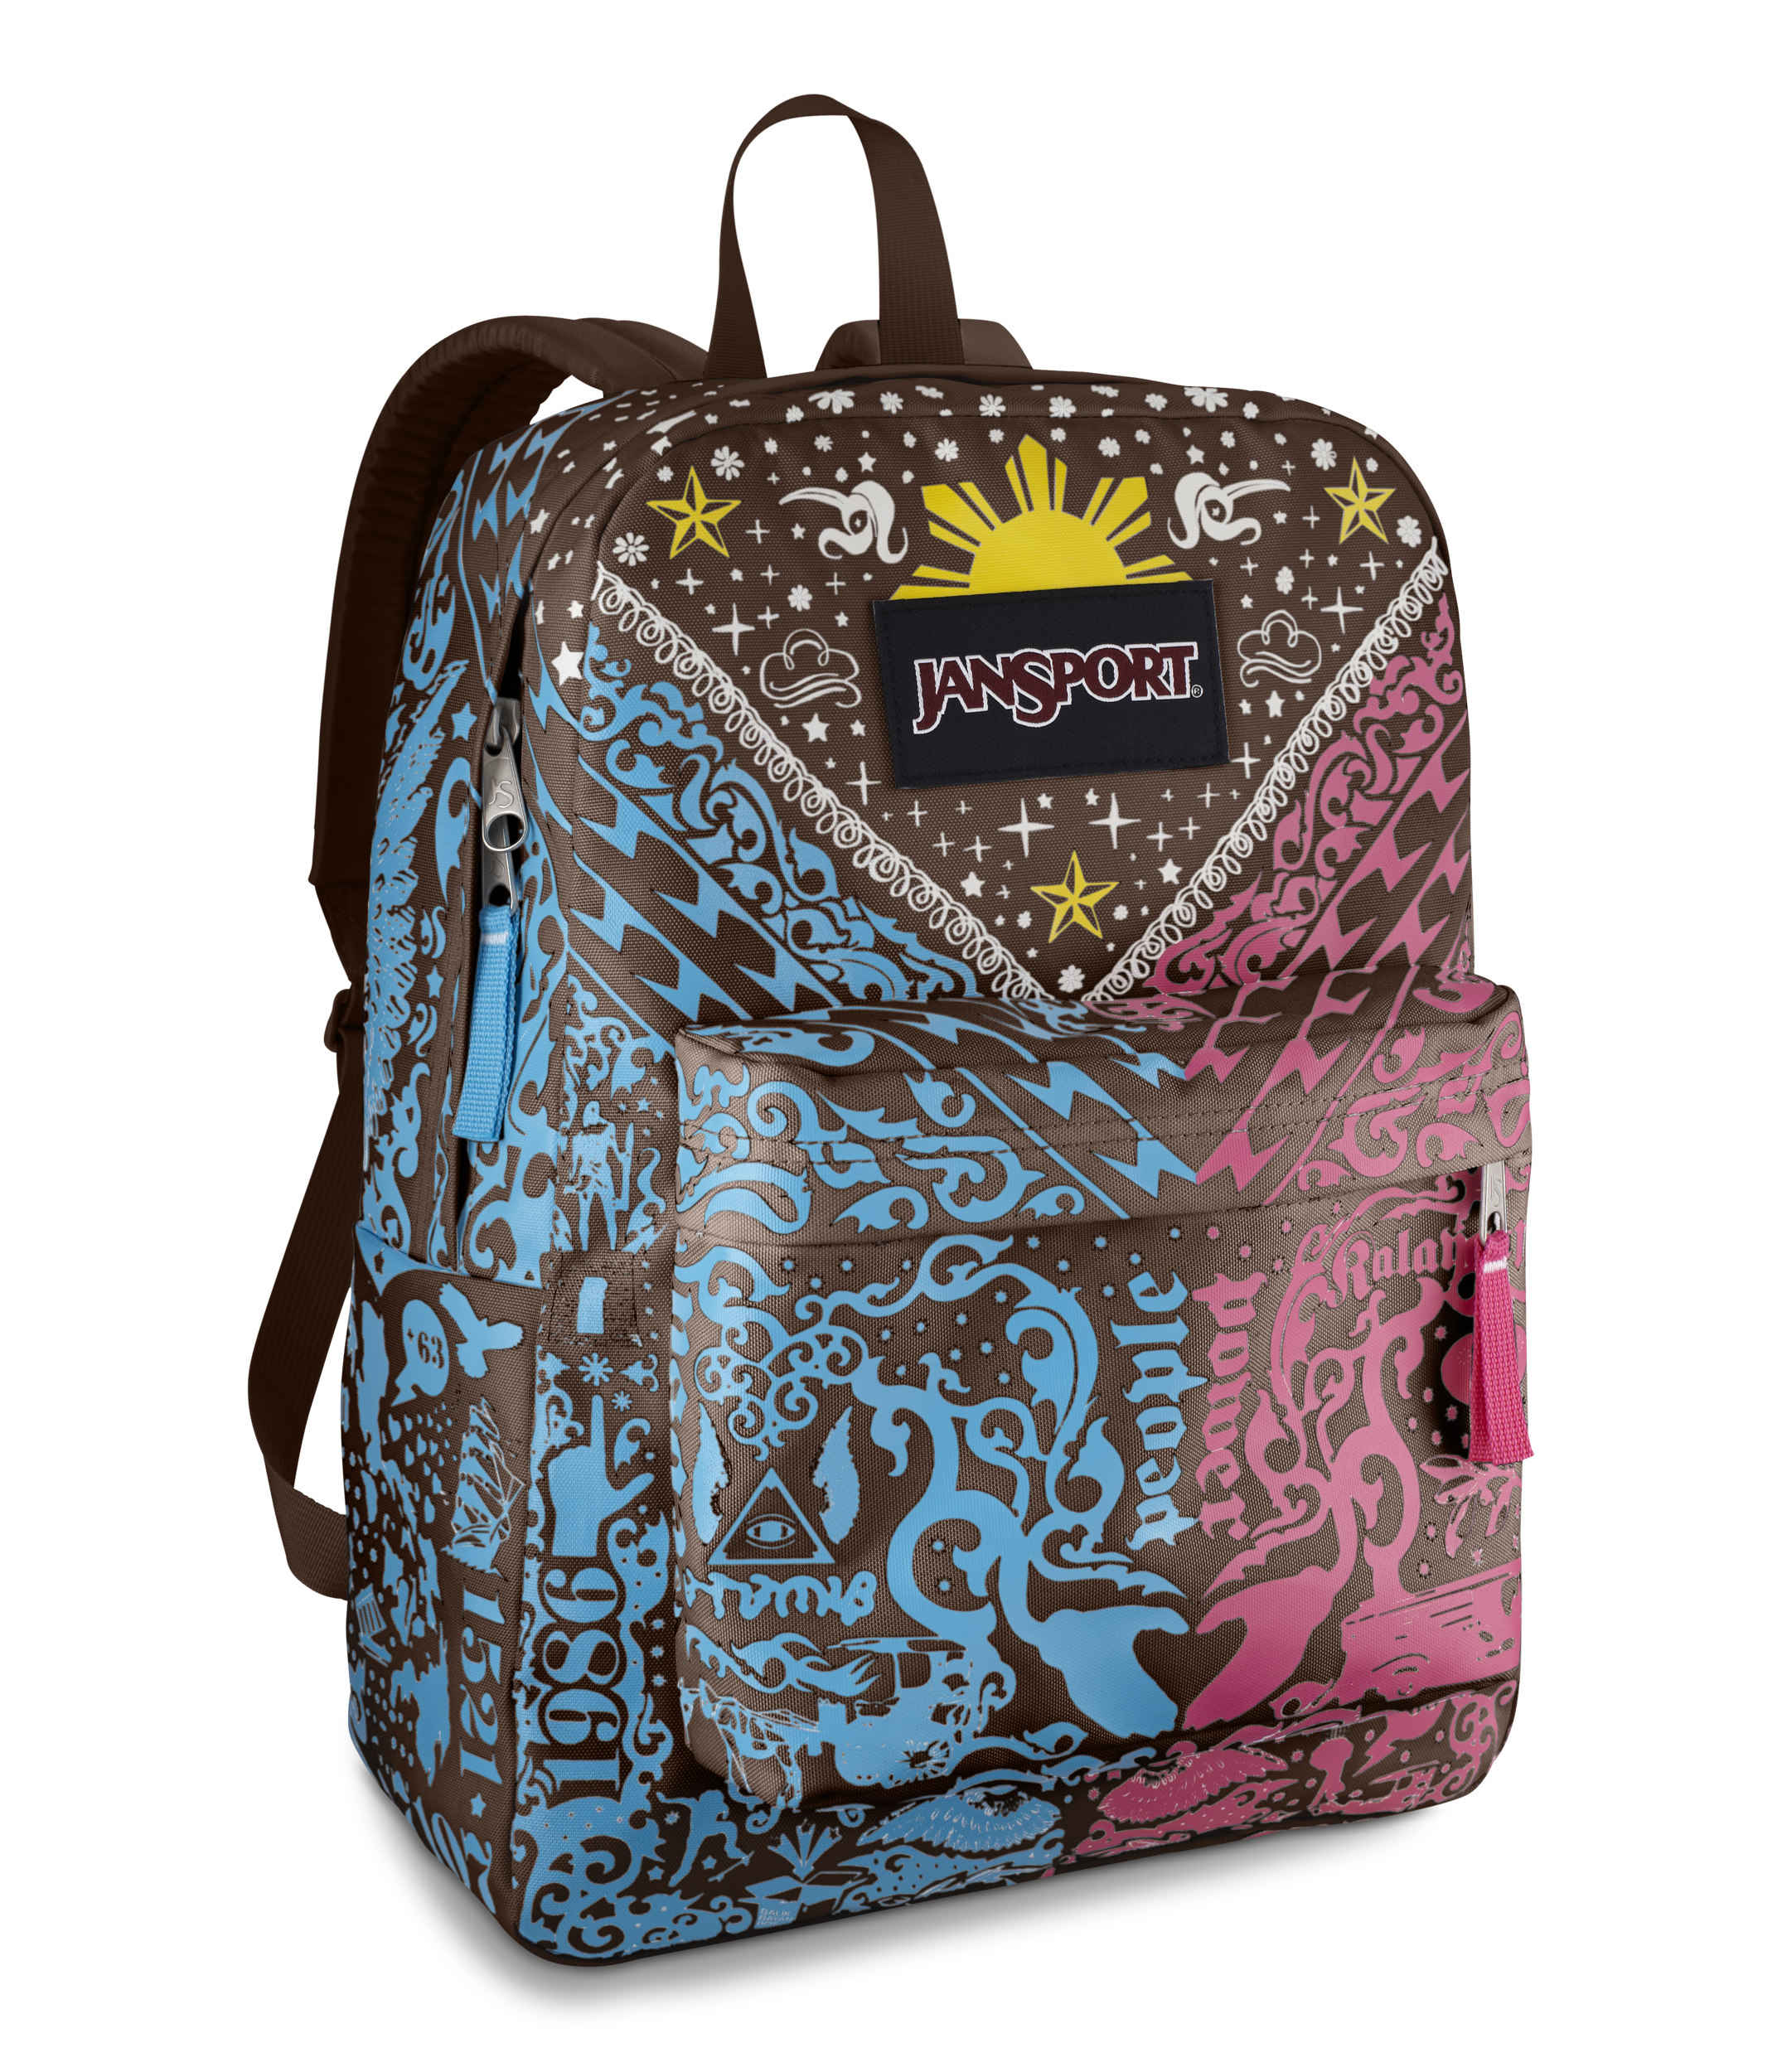 Jansport Backpack Original - Crazy Backpacks